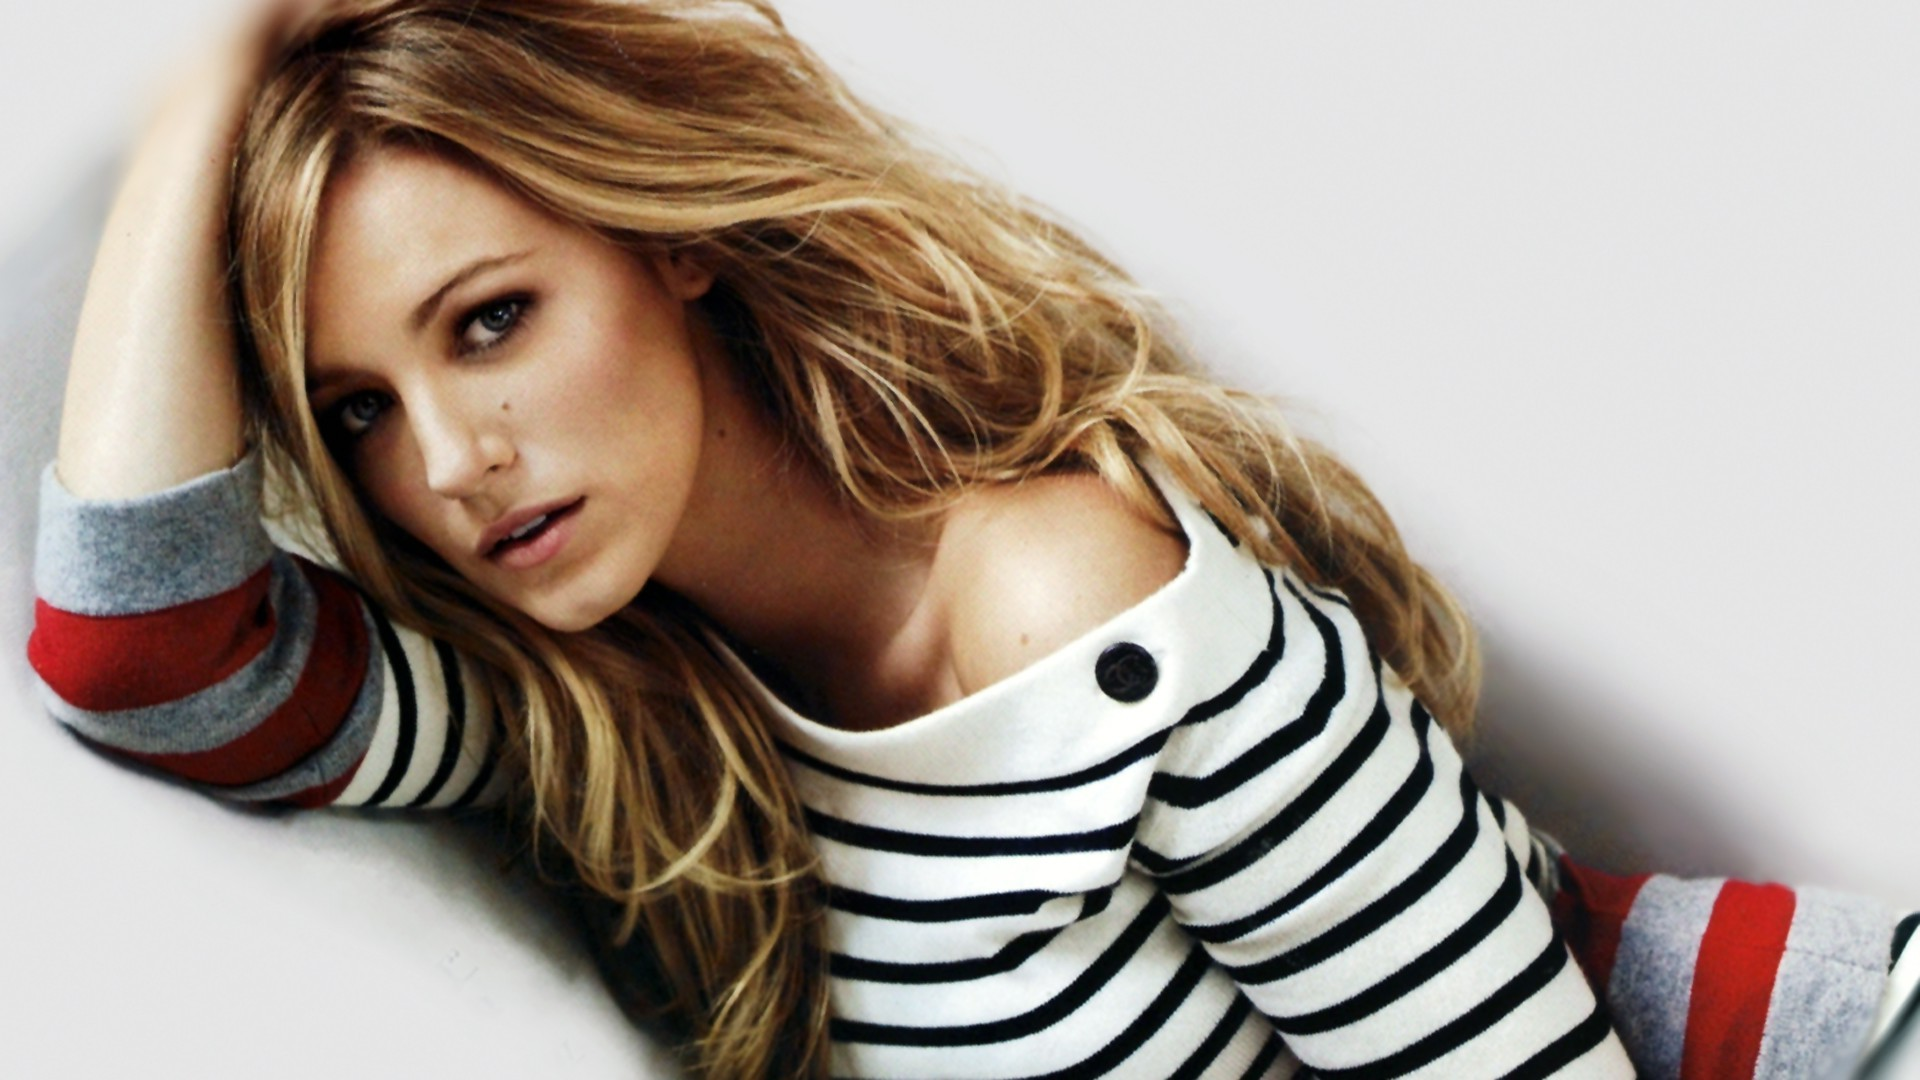 blake lively hd wallpapers for desktop download